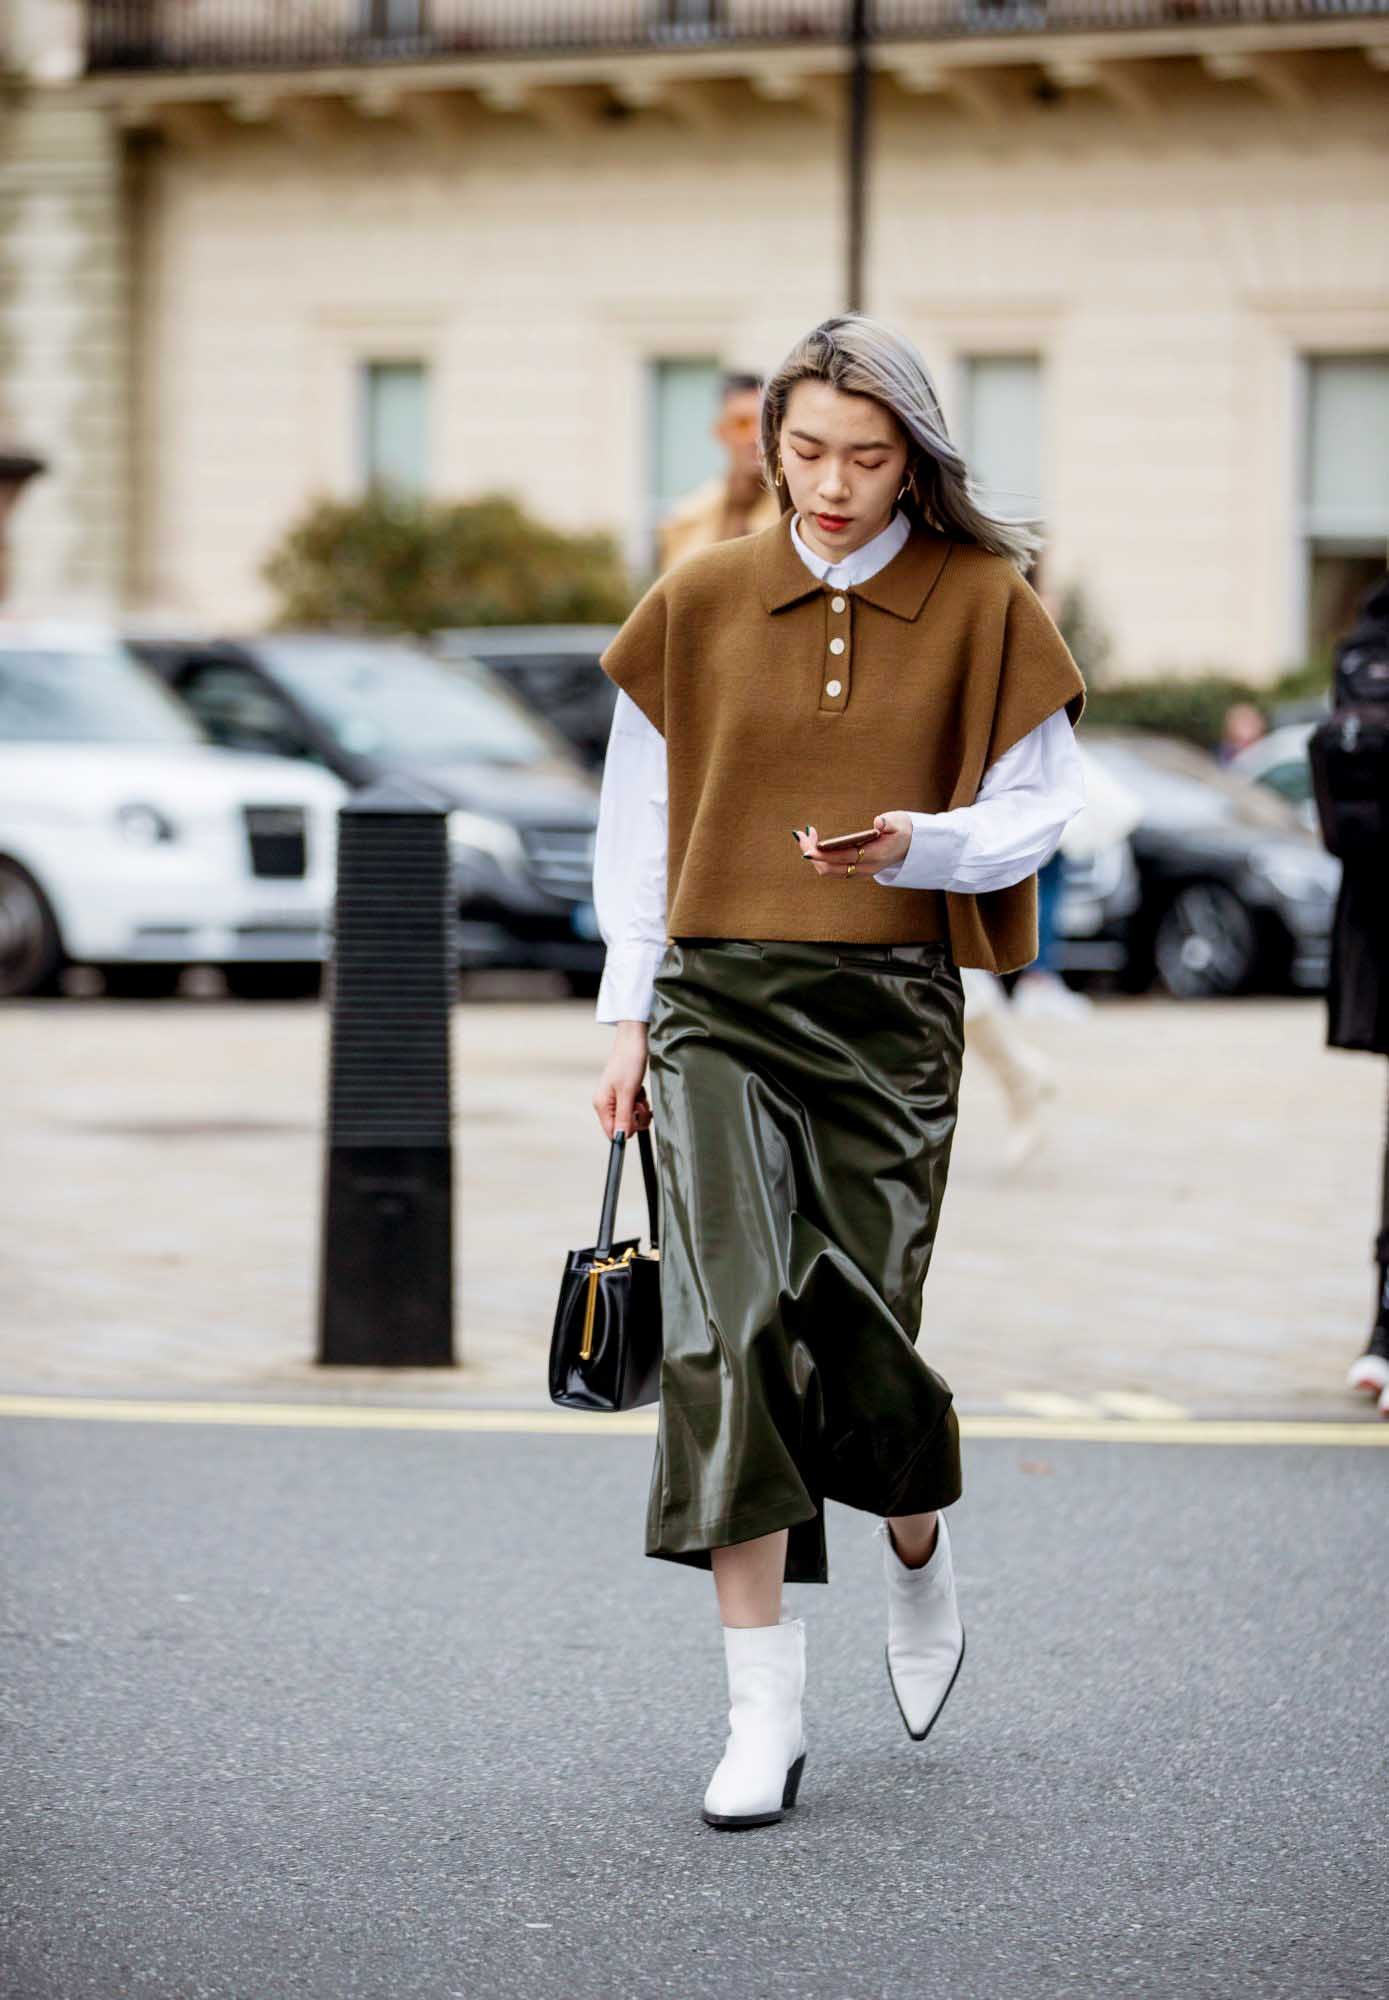 Top Fashion Trends for women you thought were out are in again in 2020